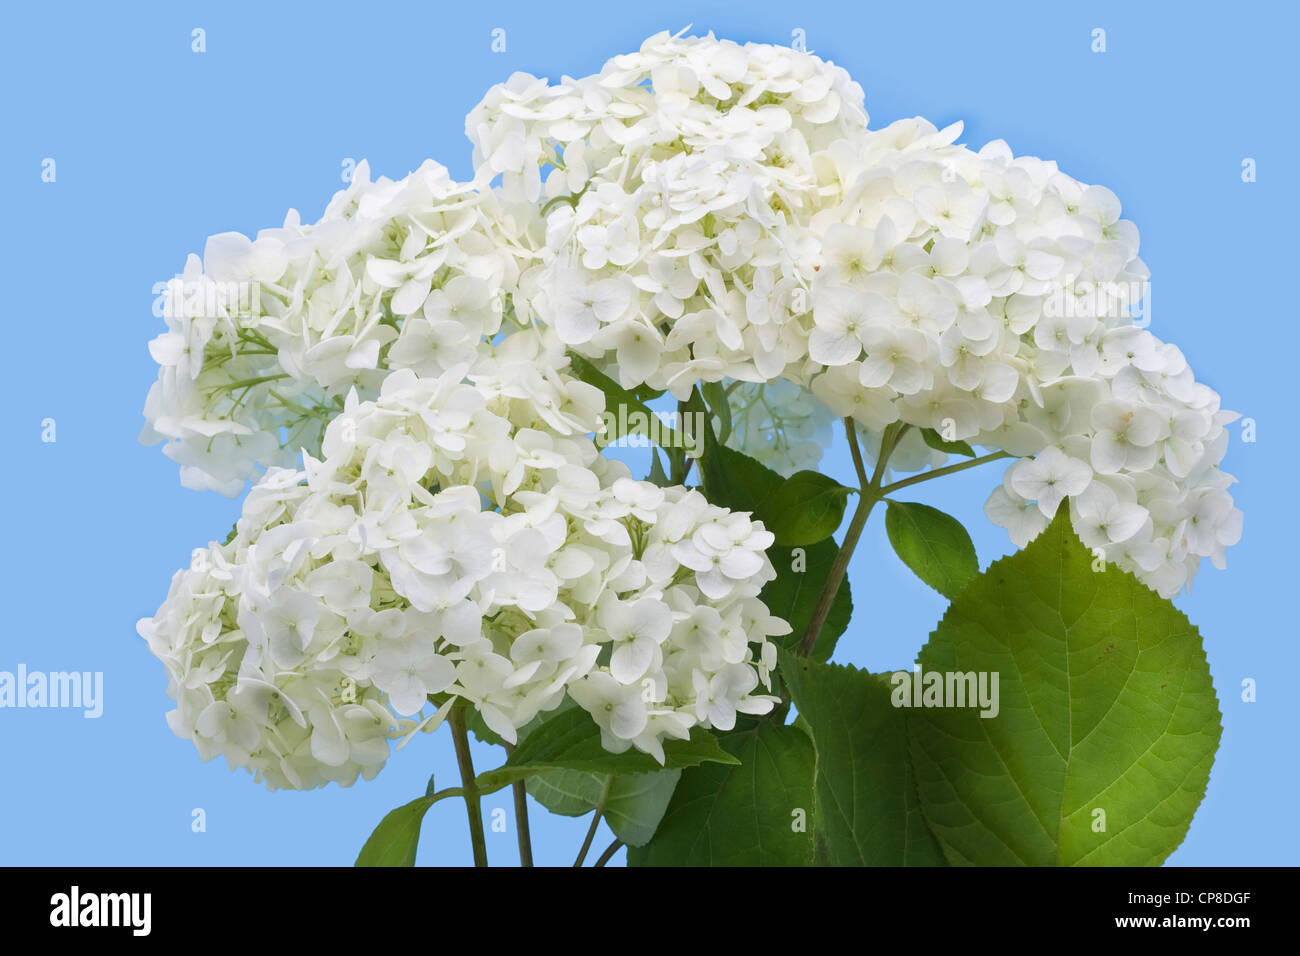 Isolated on cyan flowers of a garden white hydrangea - Stock Image